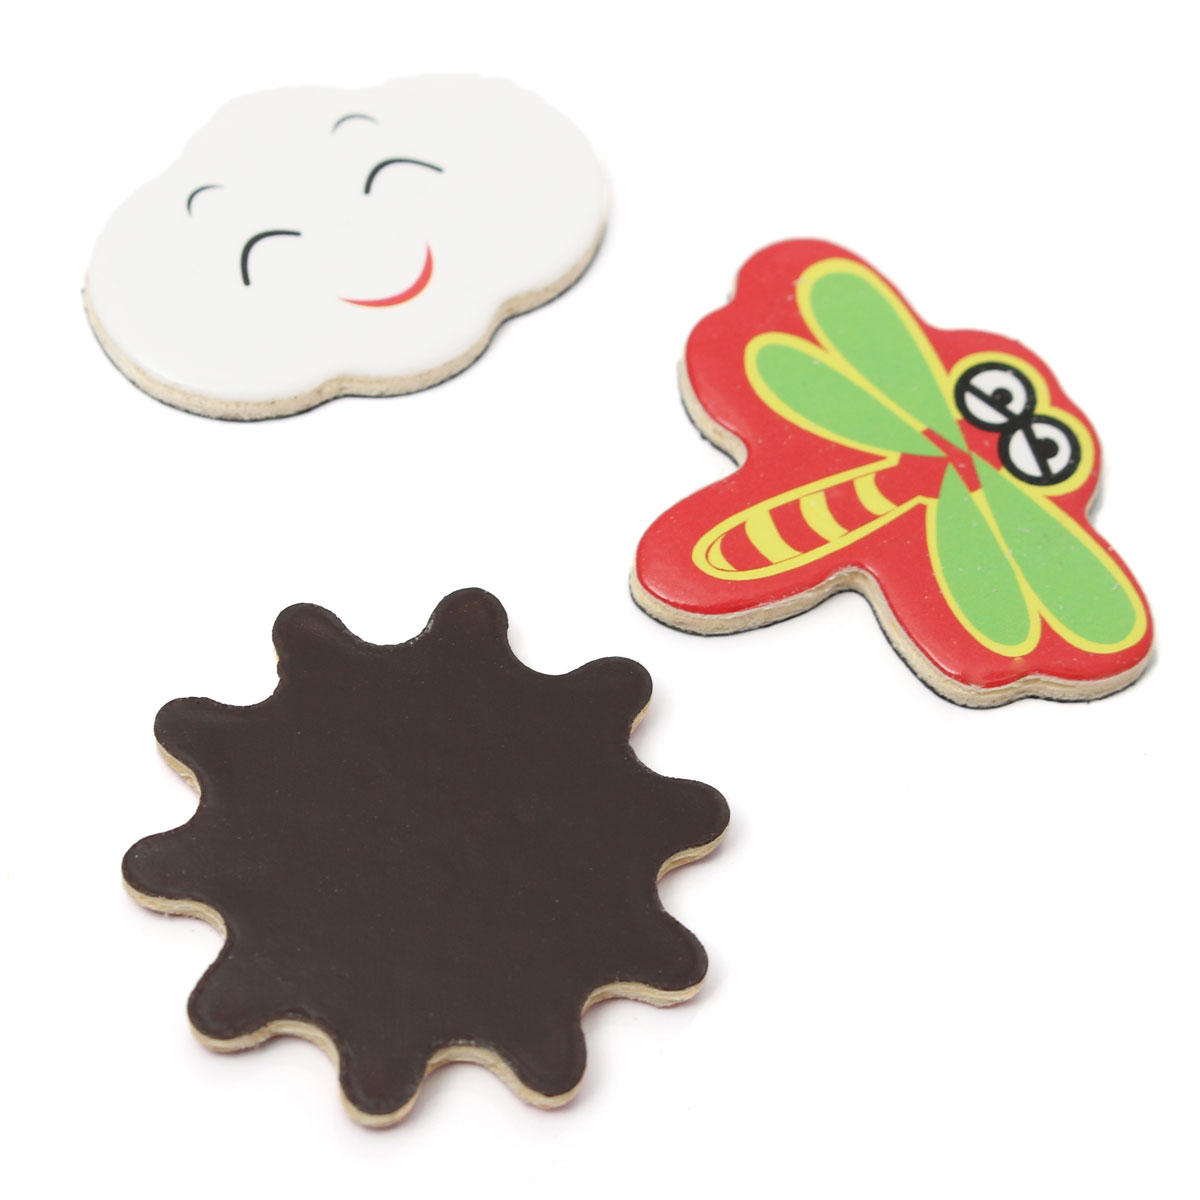 Kids Educational Learning Wooden Magnetic Drawing Board Jigsaw Puzzle Toys - 9